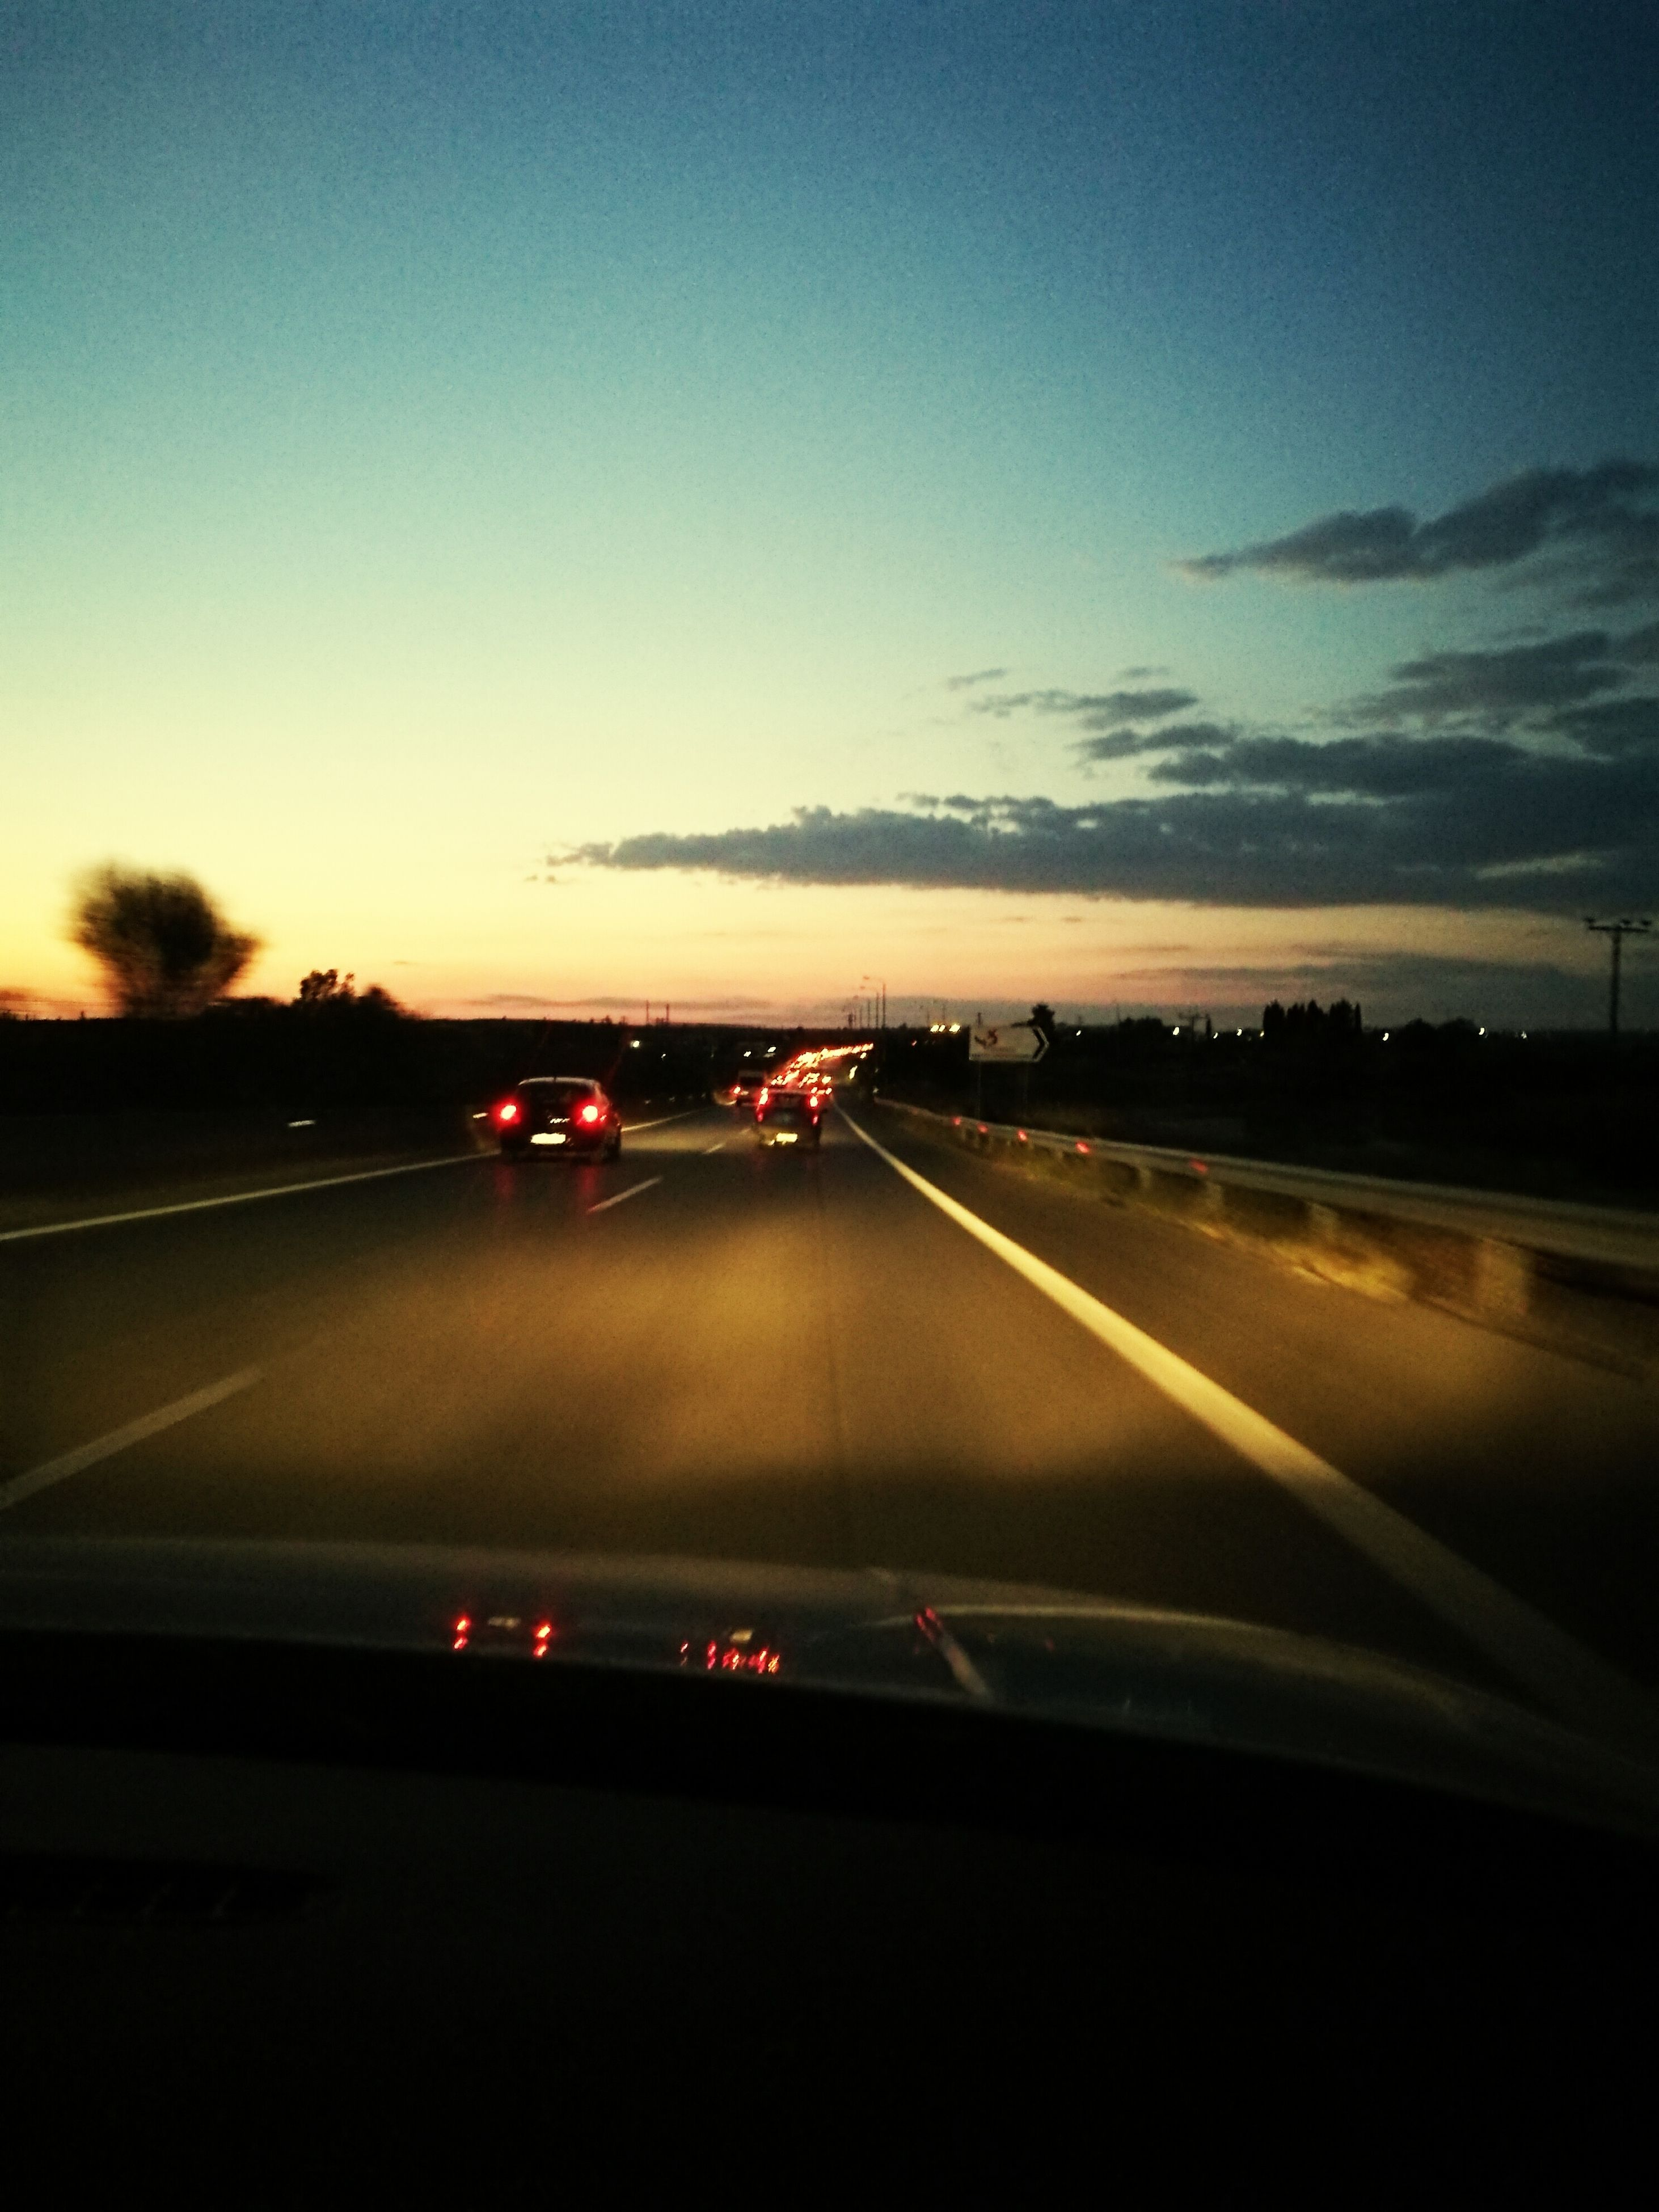 transportation, car, land vehicle, mode of transport, road, on the move, sunset, sky, car interior, road marking, motion, illuminated, dusk, the way forward, diminishing perspective, orange color, cloud - sky, car point of view, cloud, dividing line, outdoors, journey, nature, long, vanishing point, tail light